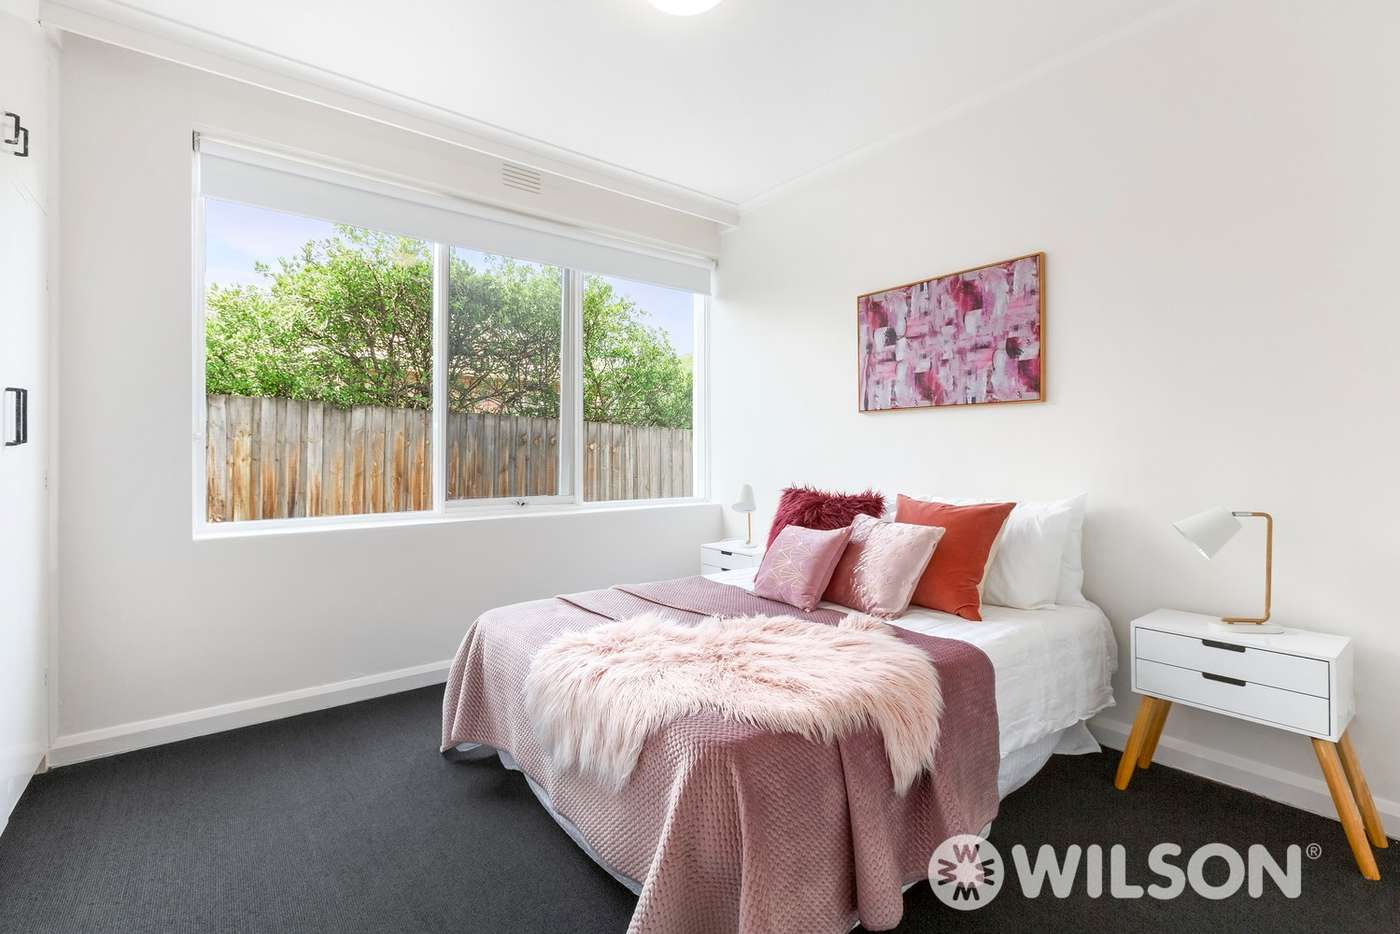 Fifth view of Homely apartment listing, 2/40 Northcote Avenue, Caulfield North VIC 3161